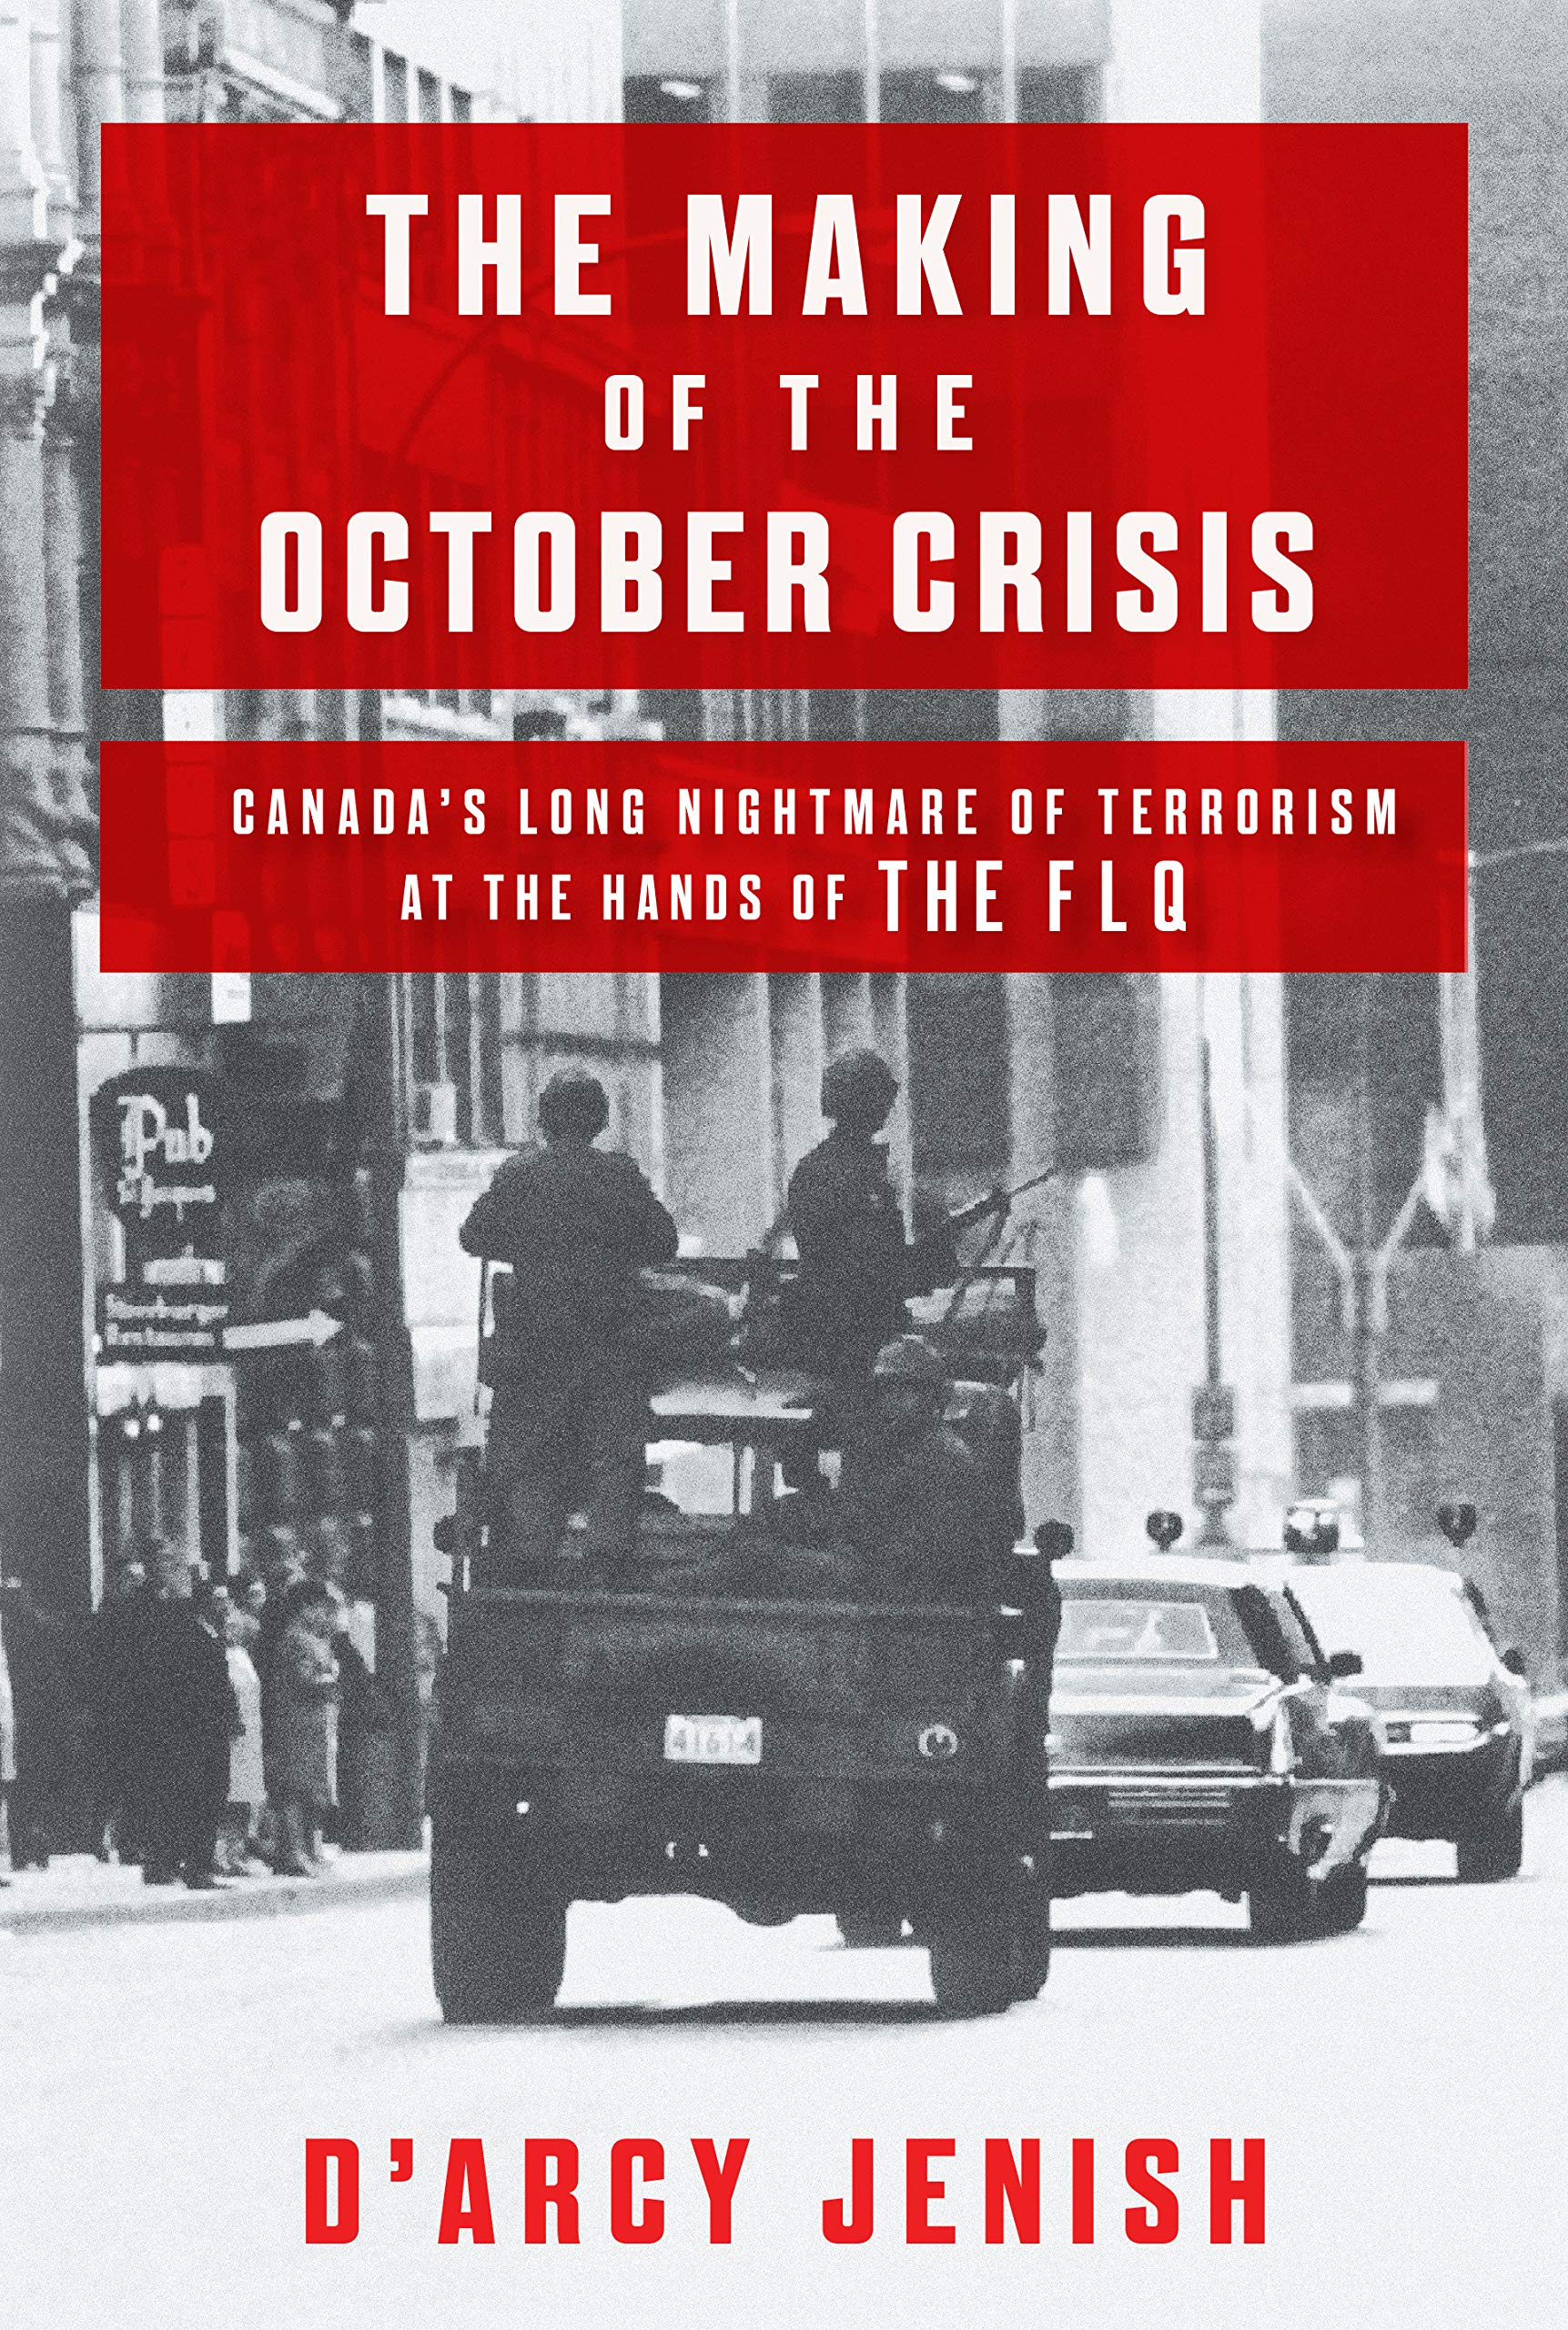 The Making of the October Crisis: Canada's Long